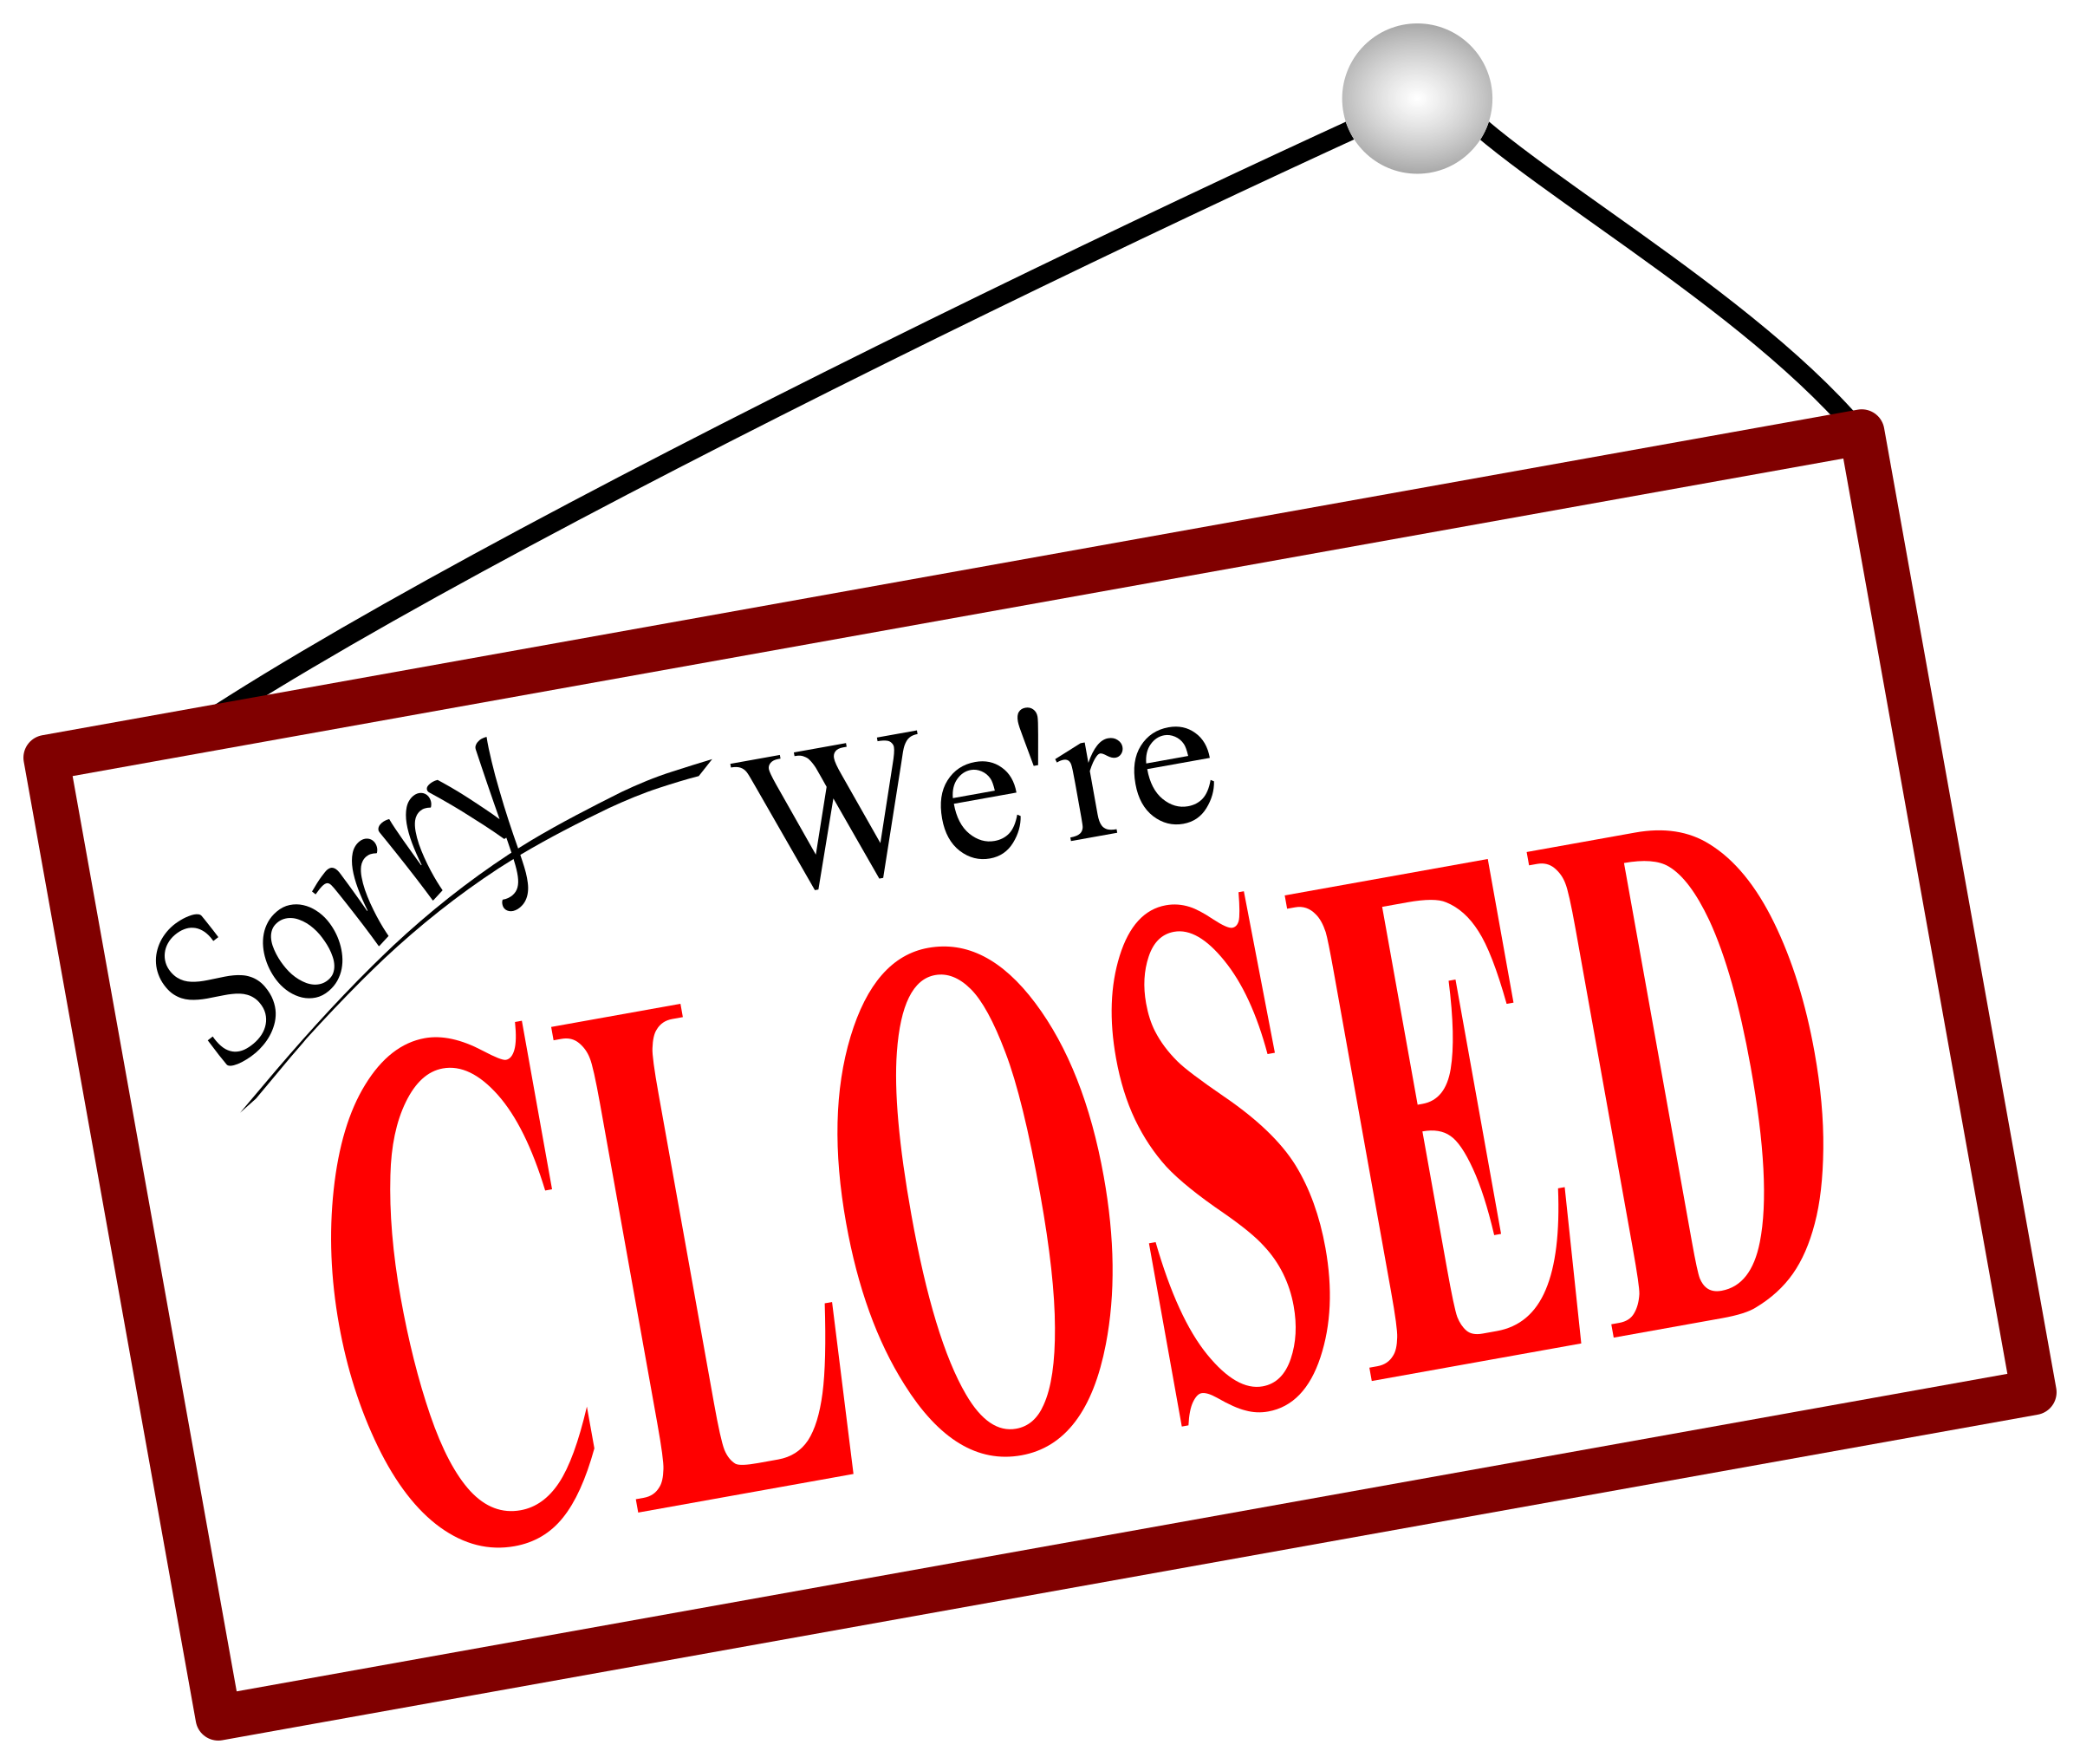 Sorry We're closed sign vector clipart image.